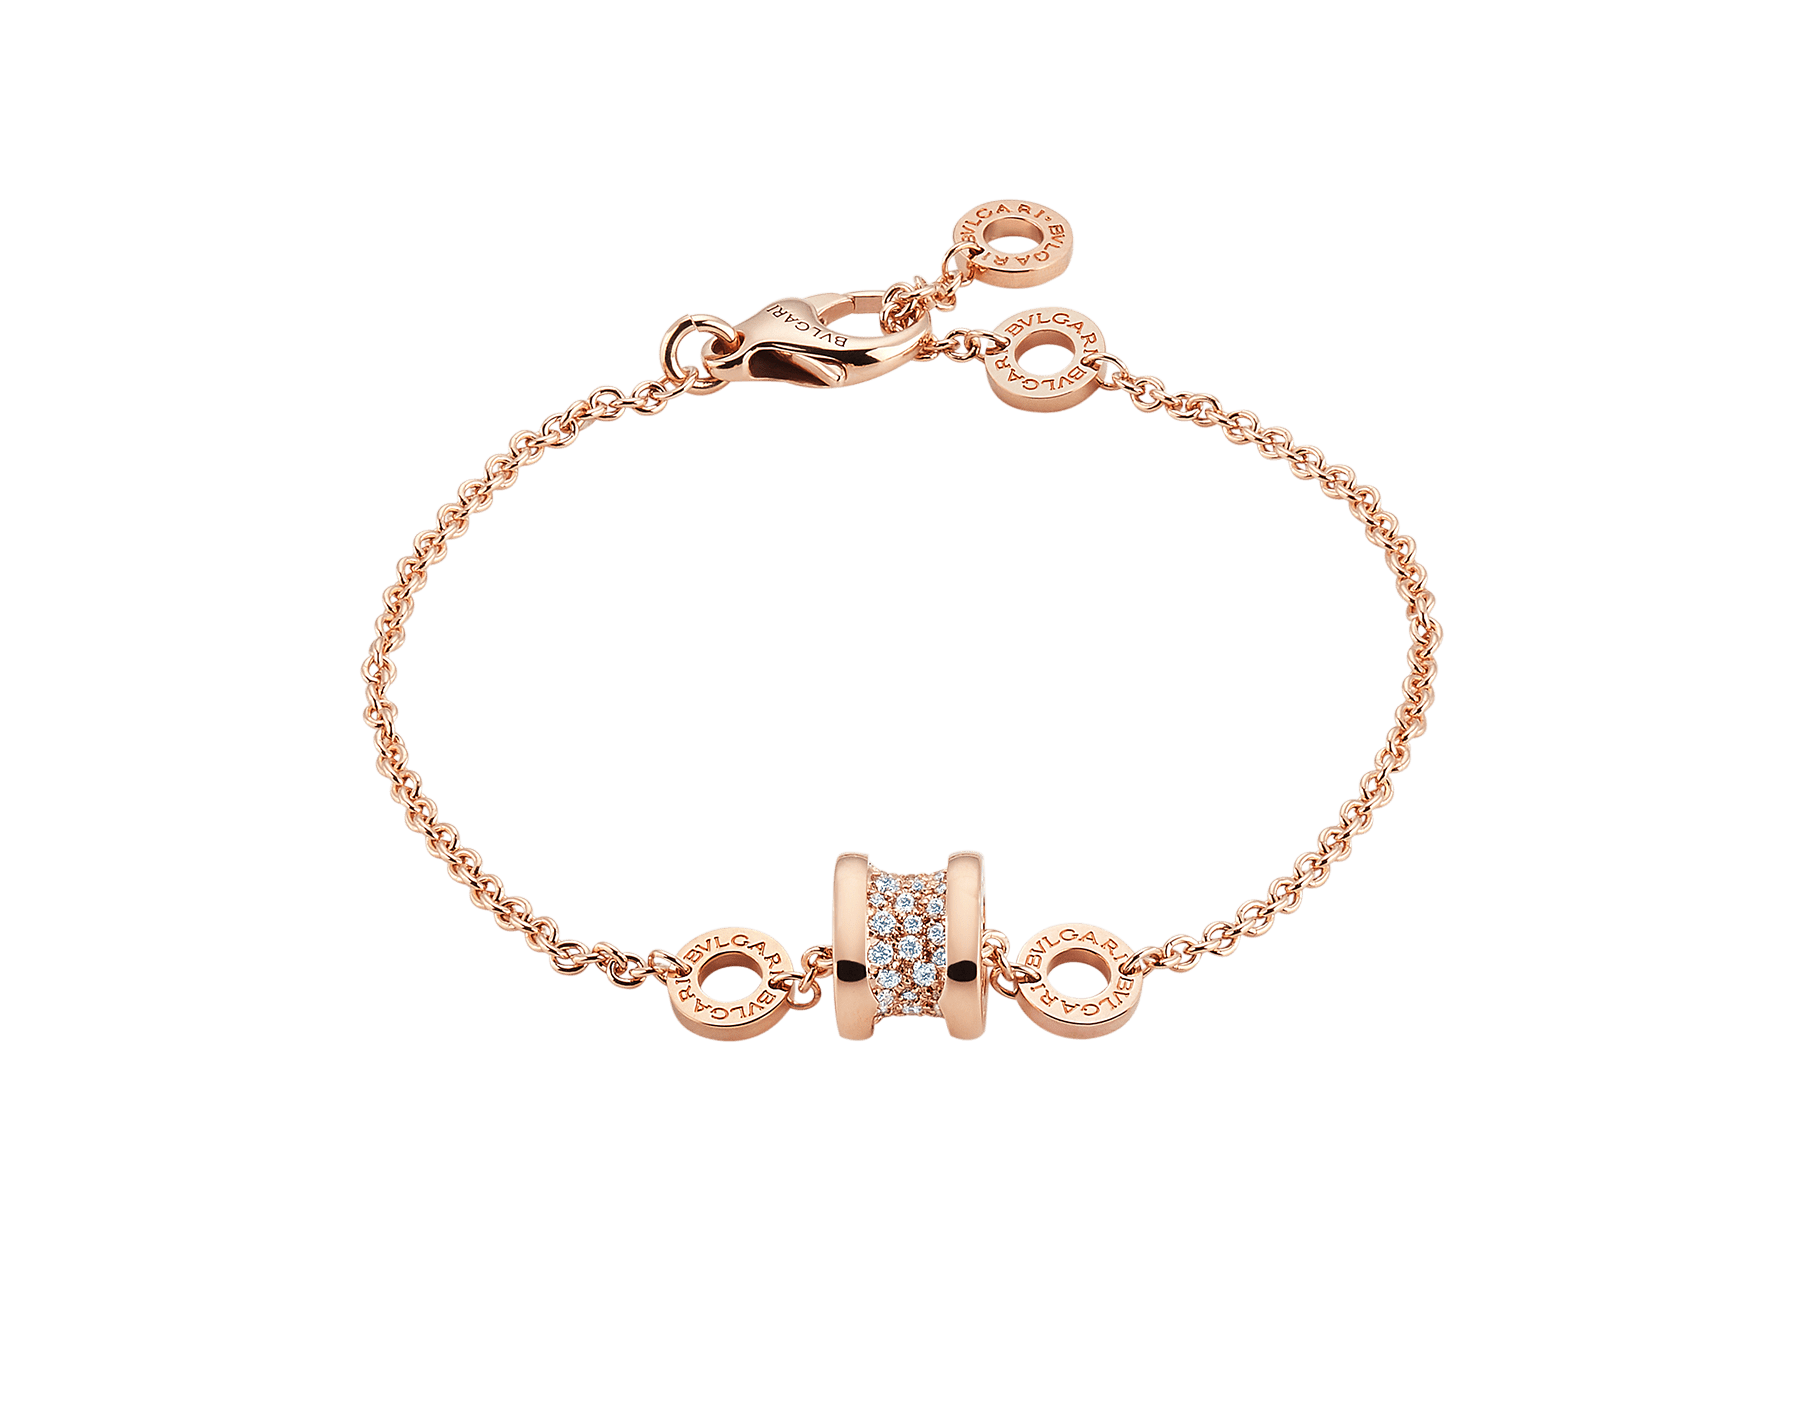 B.zero1 soft bracelet in 18 kt rose gold, set with pavé diamonds on the spiral. BR857358 image 1